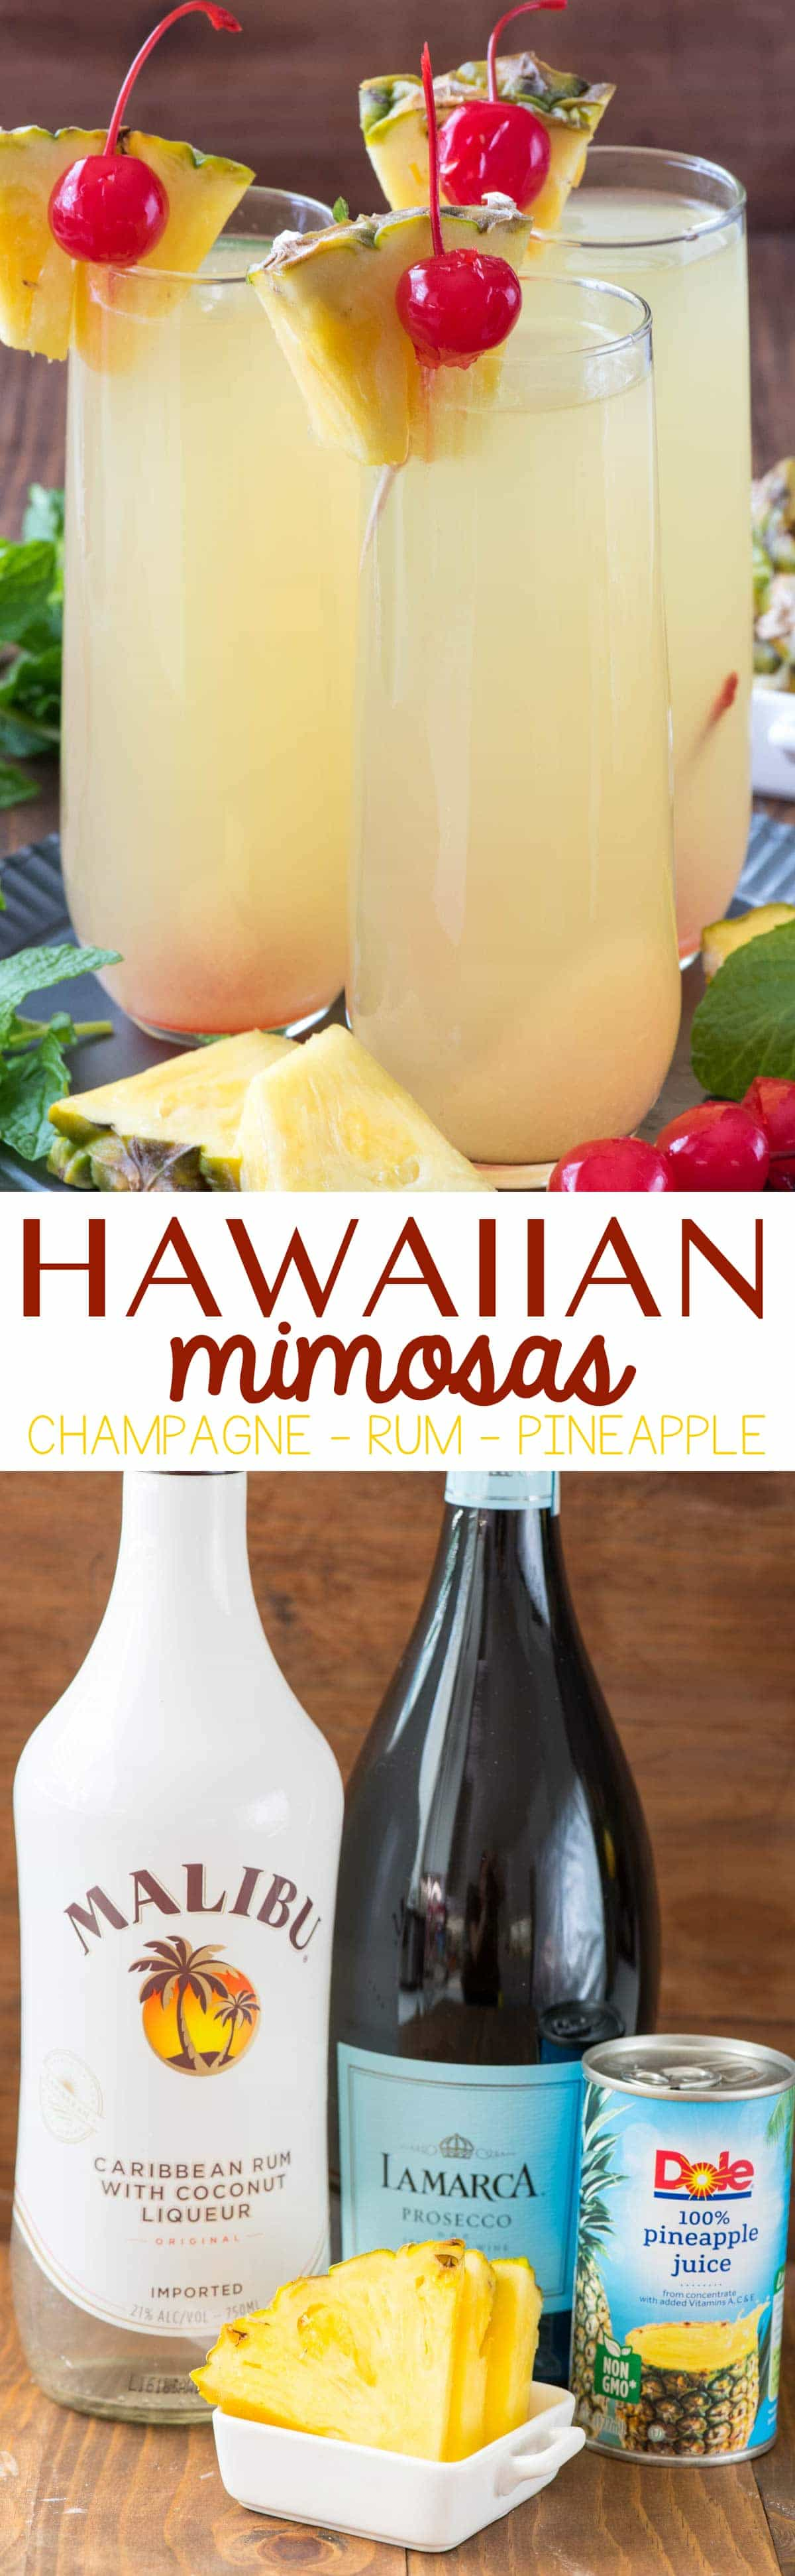 photo collage- Three Hawaiian Mimosas and Malibu Rum, Prosecco and Dole can of pineapples.